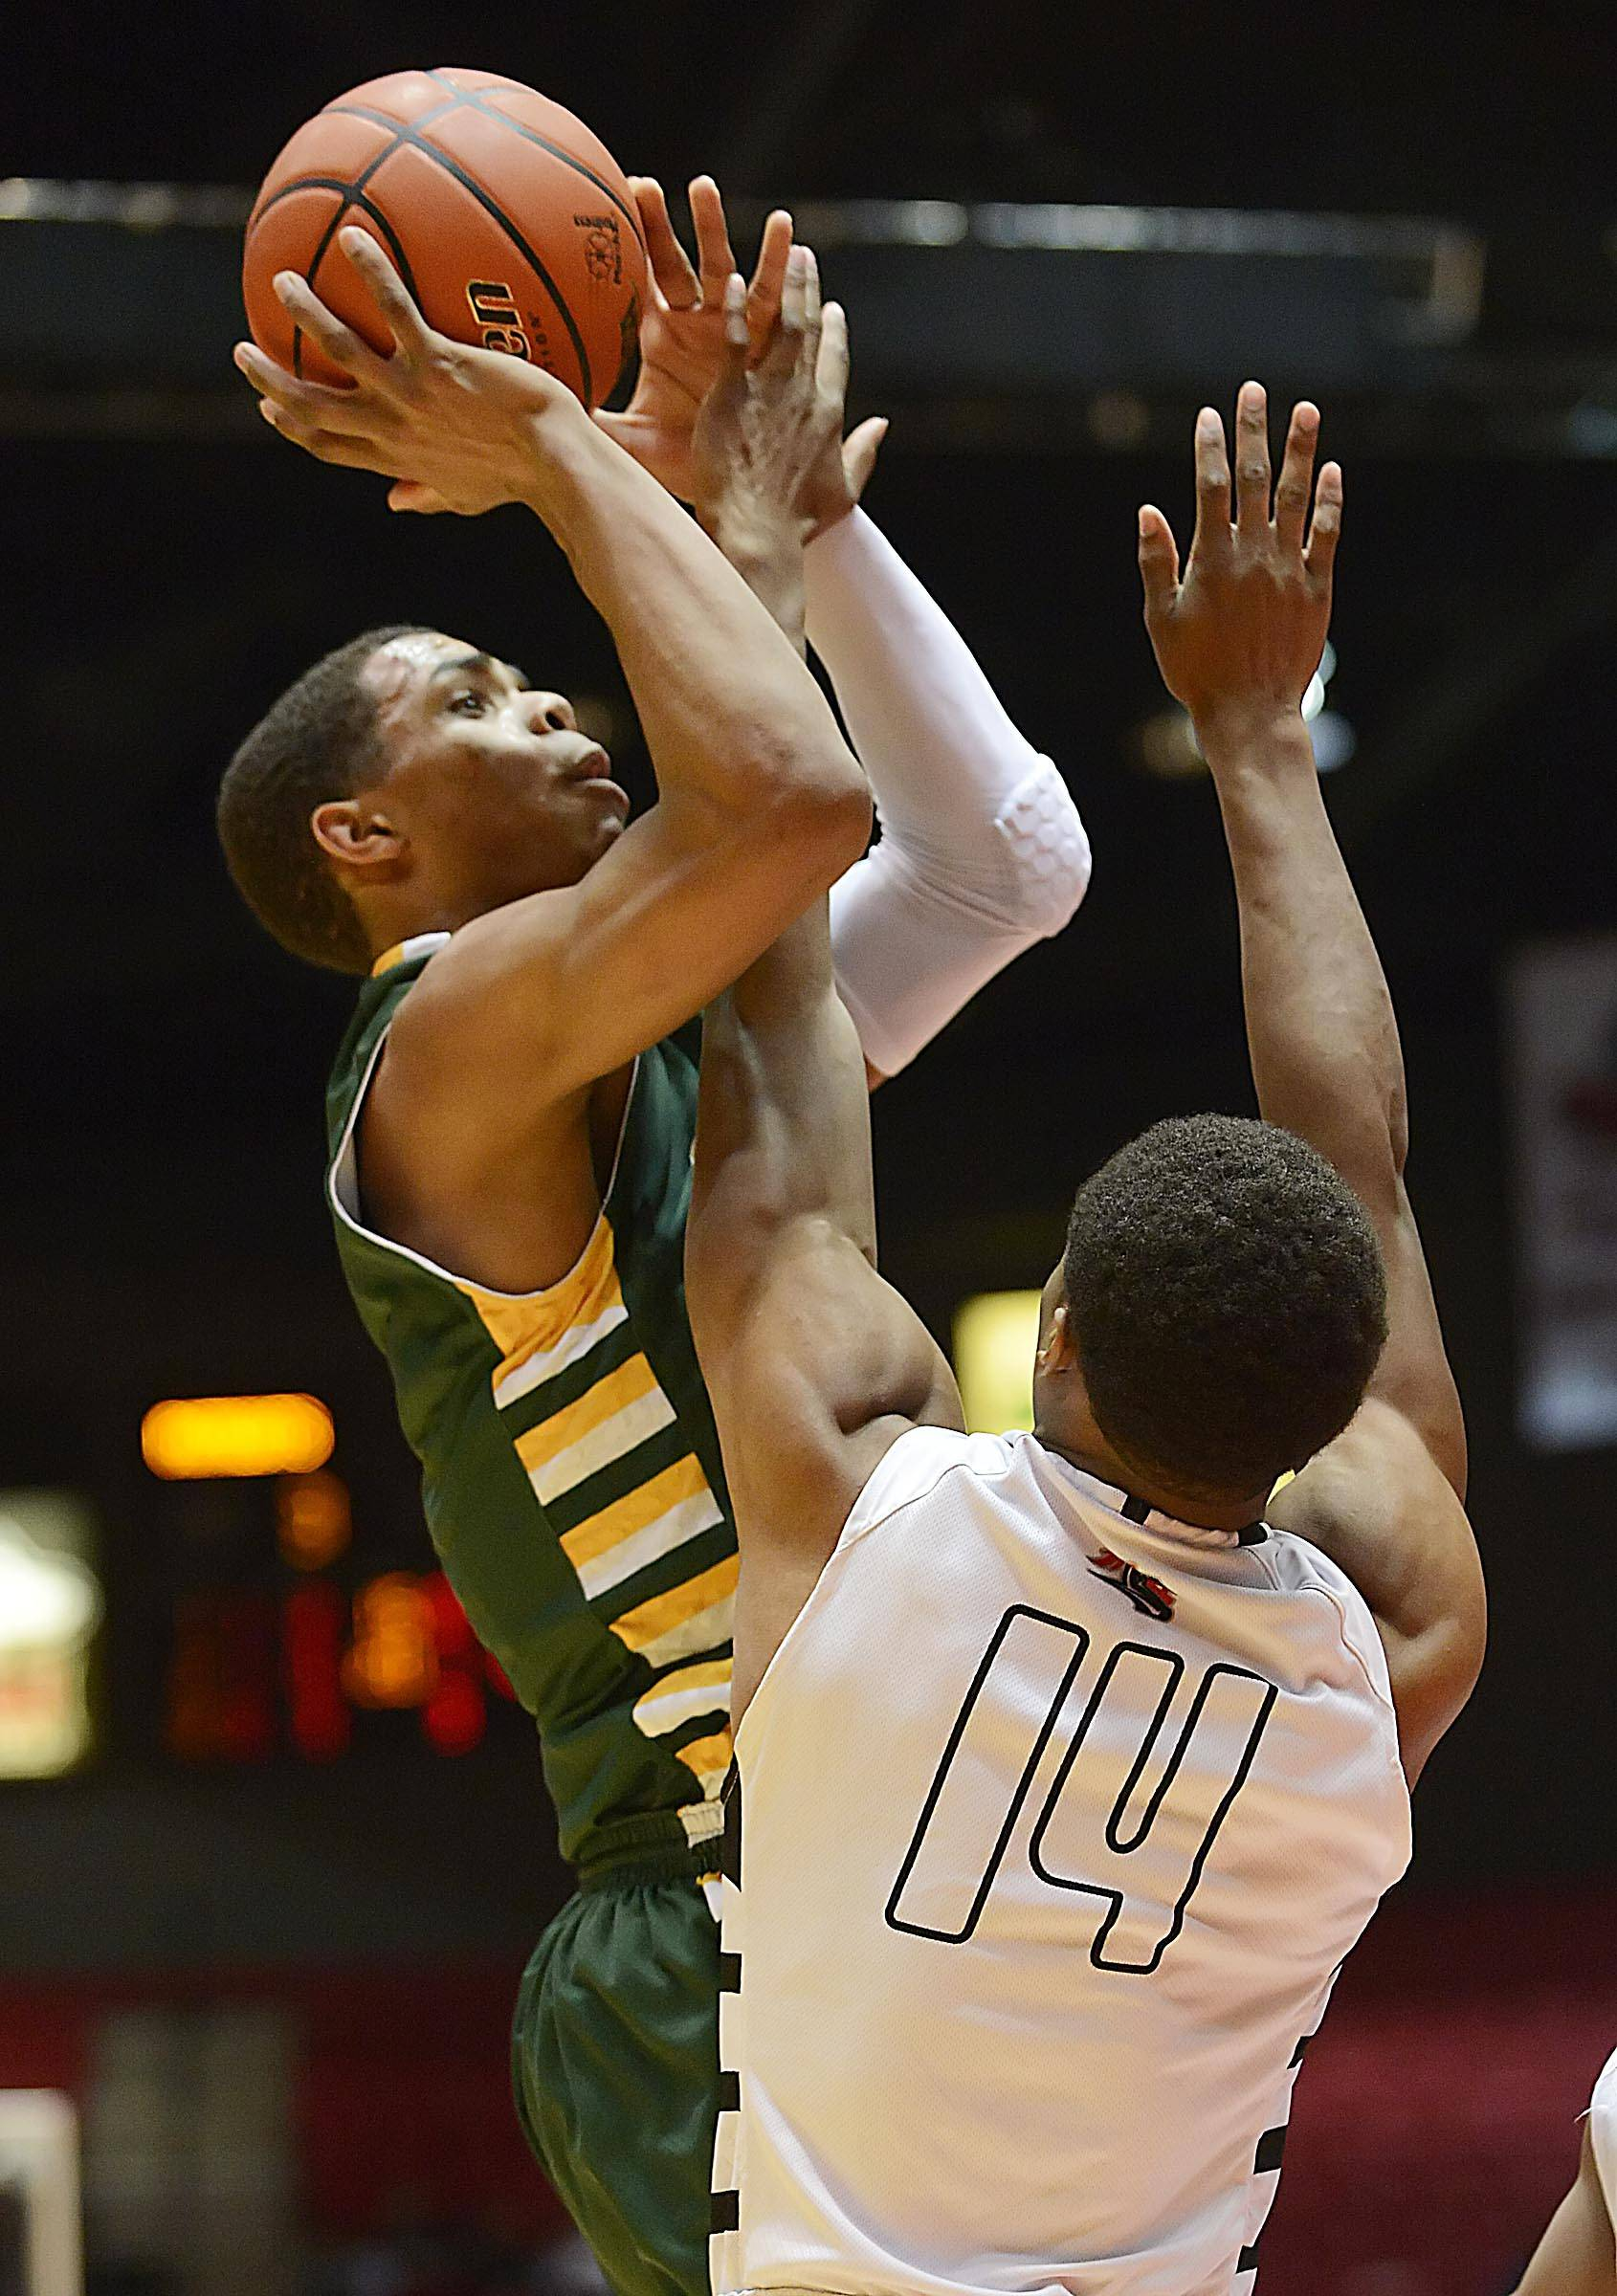 Images from the Stevenson vs. Rockford Auburn boys Class 4A supersectional basketball game on Tuesday, March 18 in DeKalb.